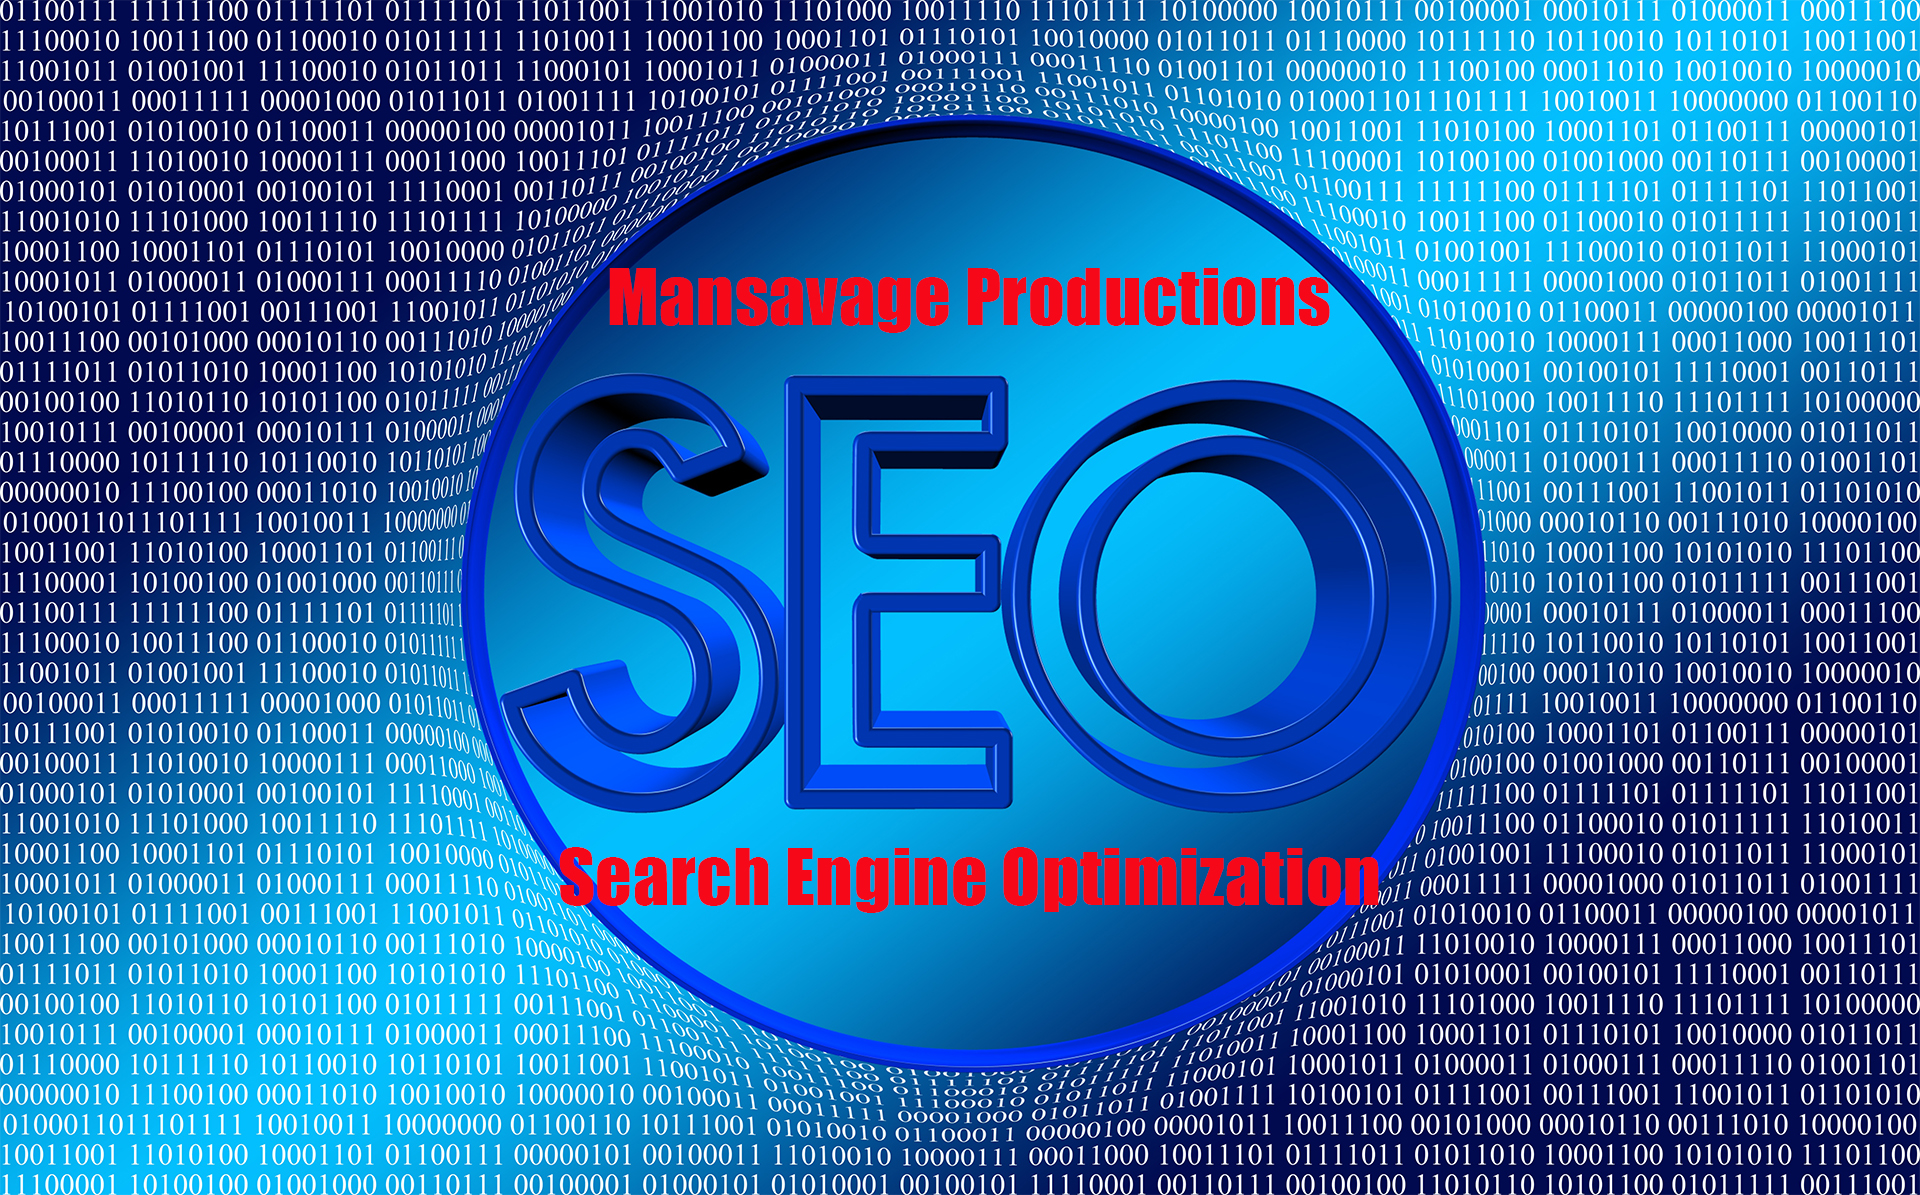 SEO Search Engine Optimization Services Performed by Mansavage Producctions.